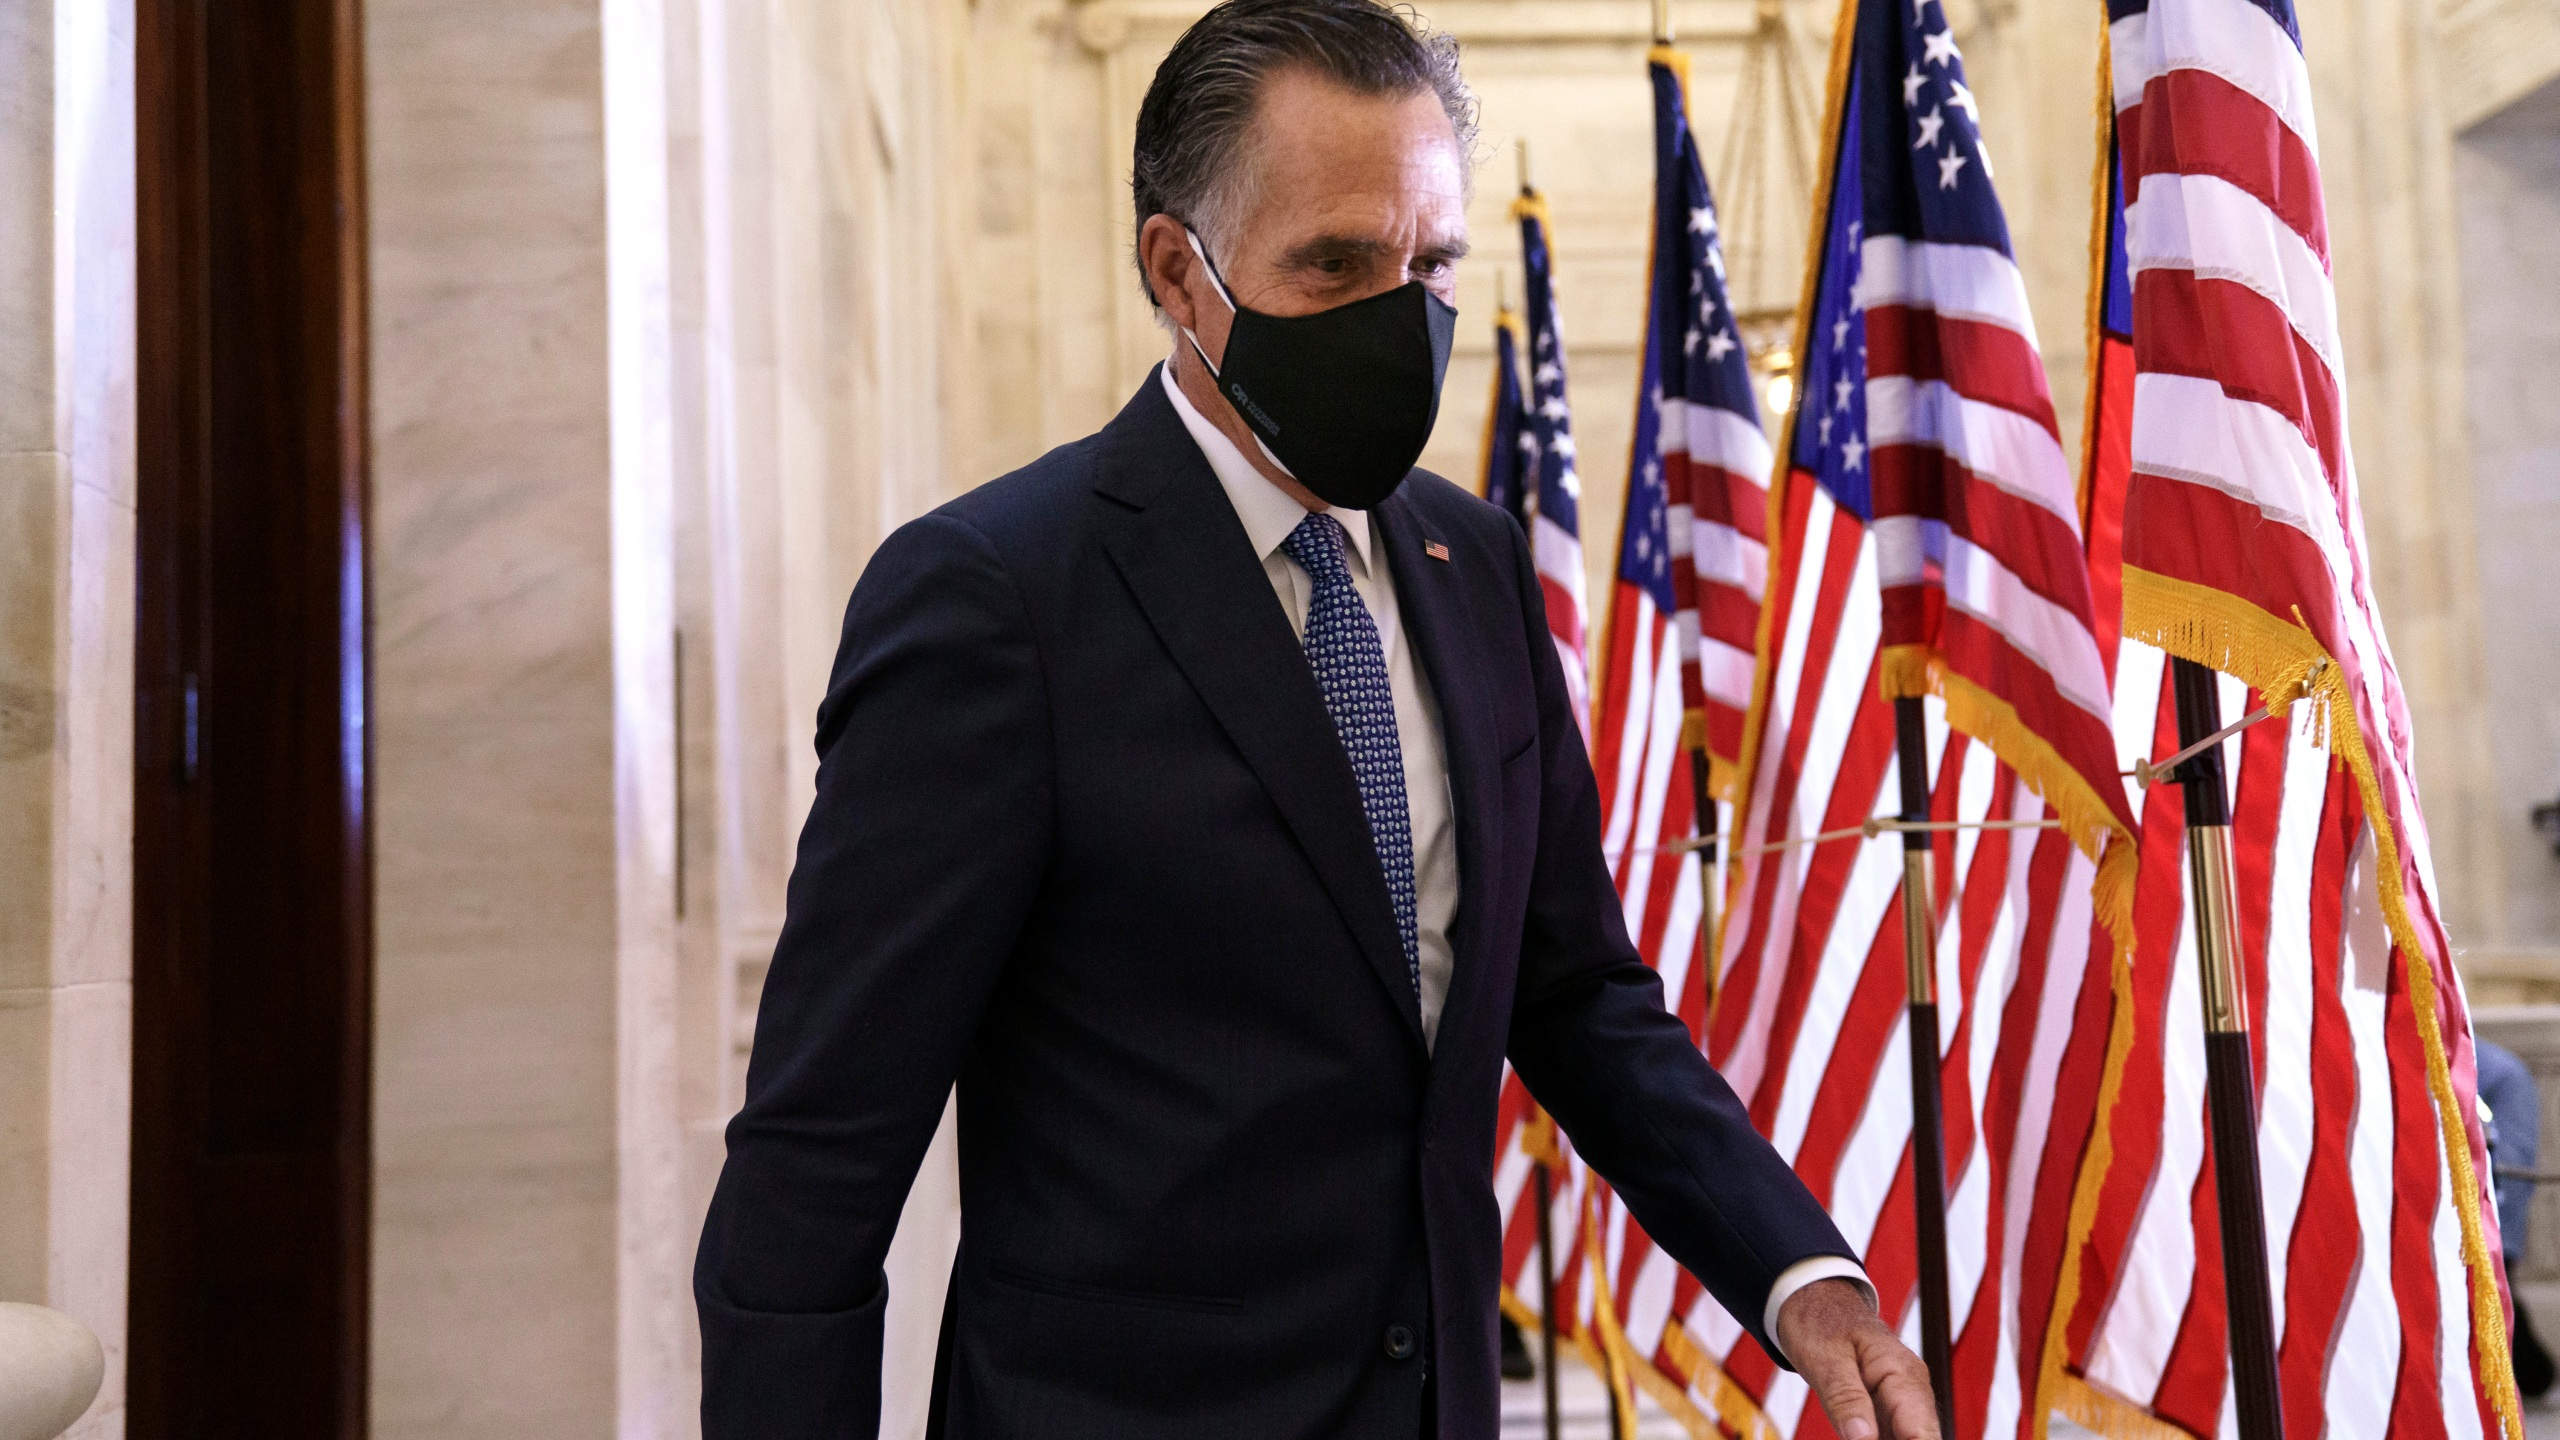 Sen. Mitt Romney, R-Utah, departs after the Republican Conference held leadership elections, on Capitol Hill in Washington, Tuesday, Nov. 10, 2020. (J. Scott Applewhite/AP Photo)